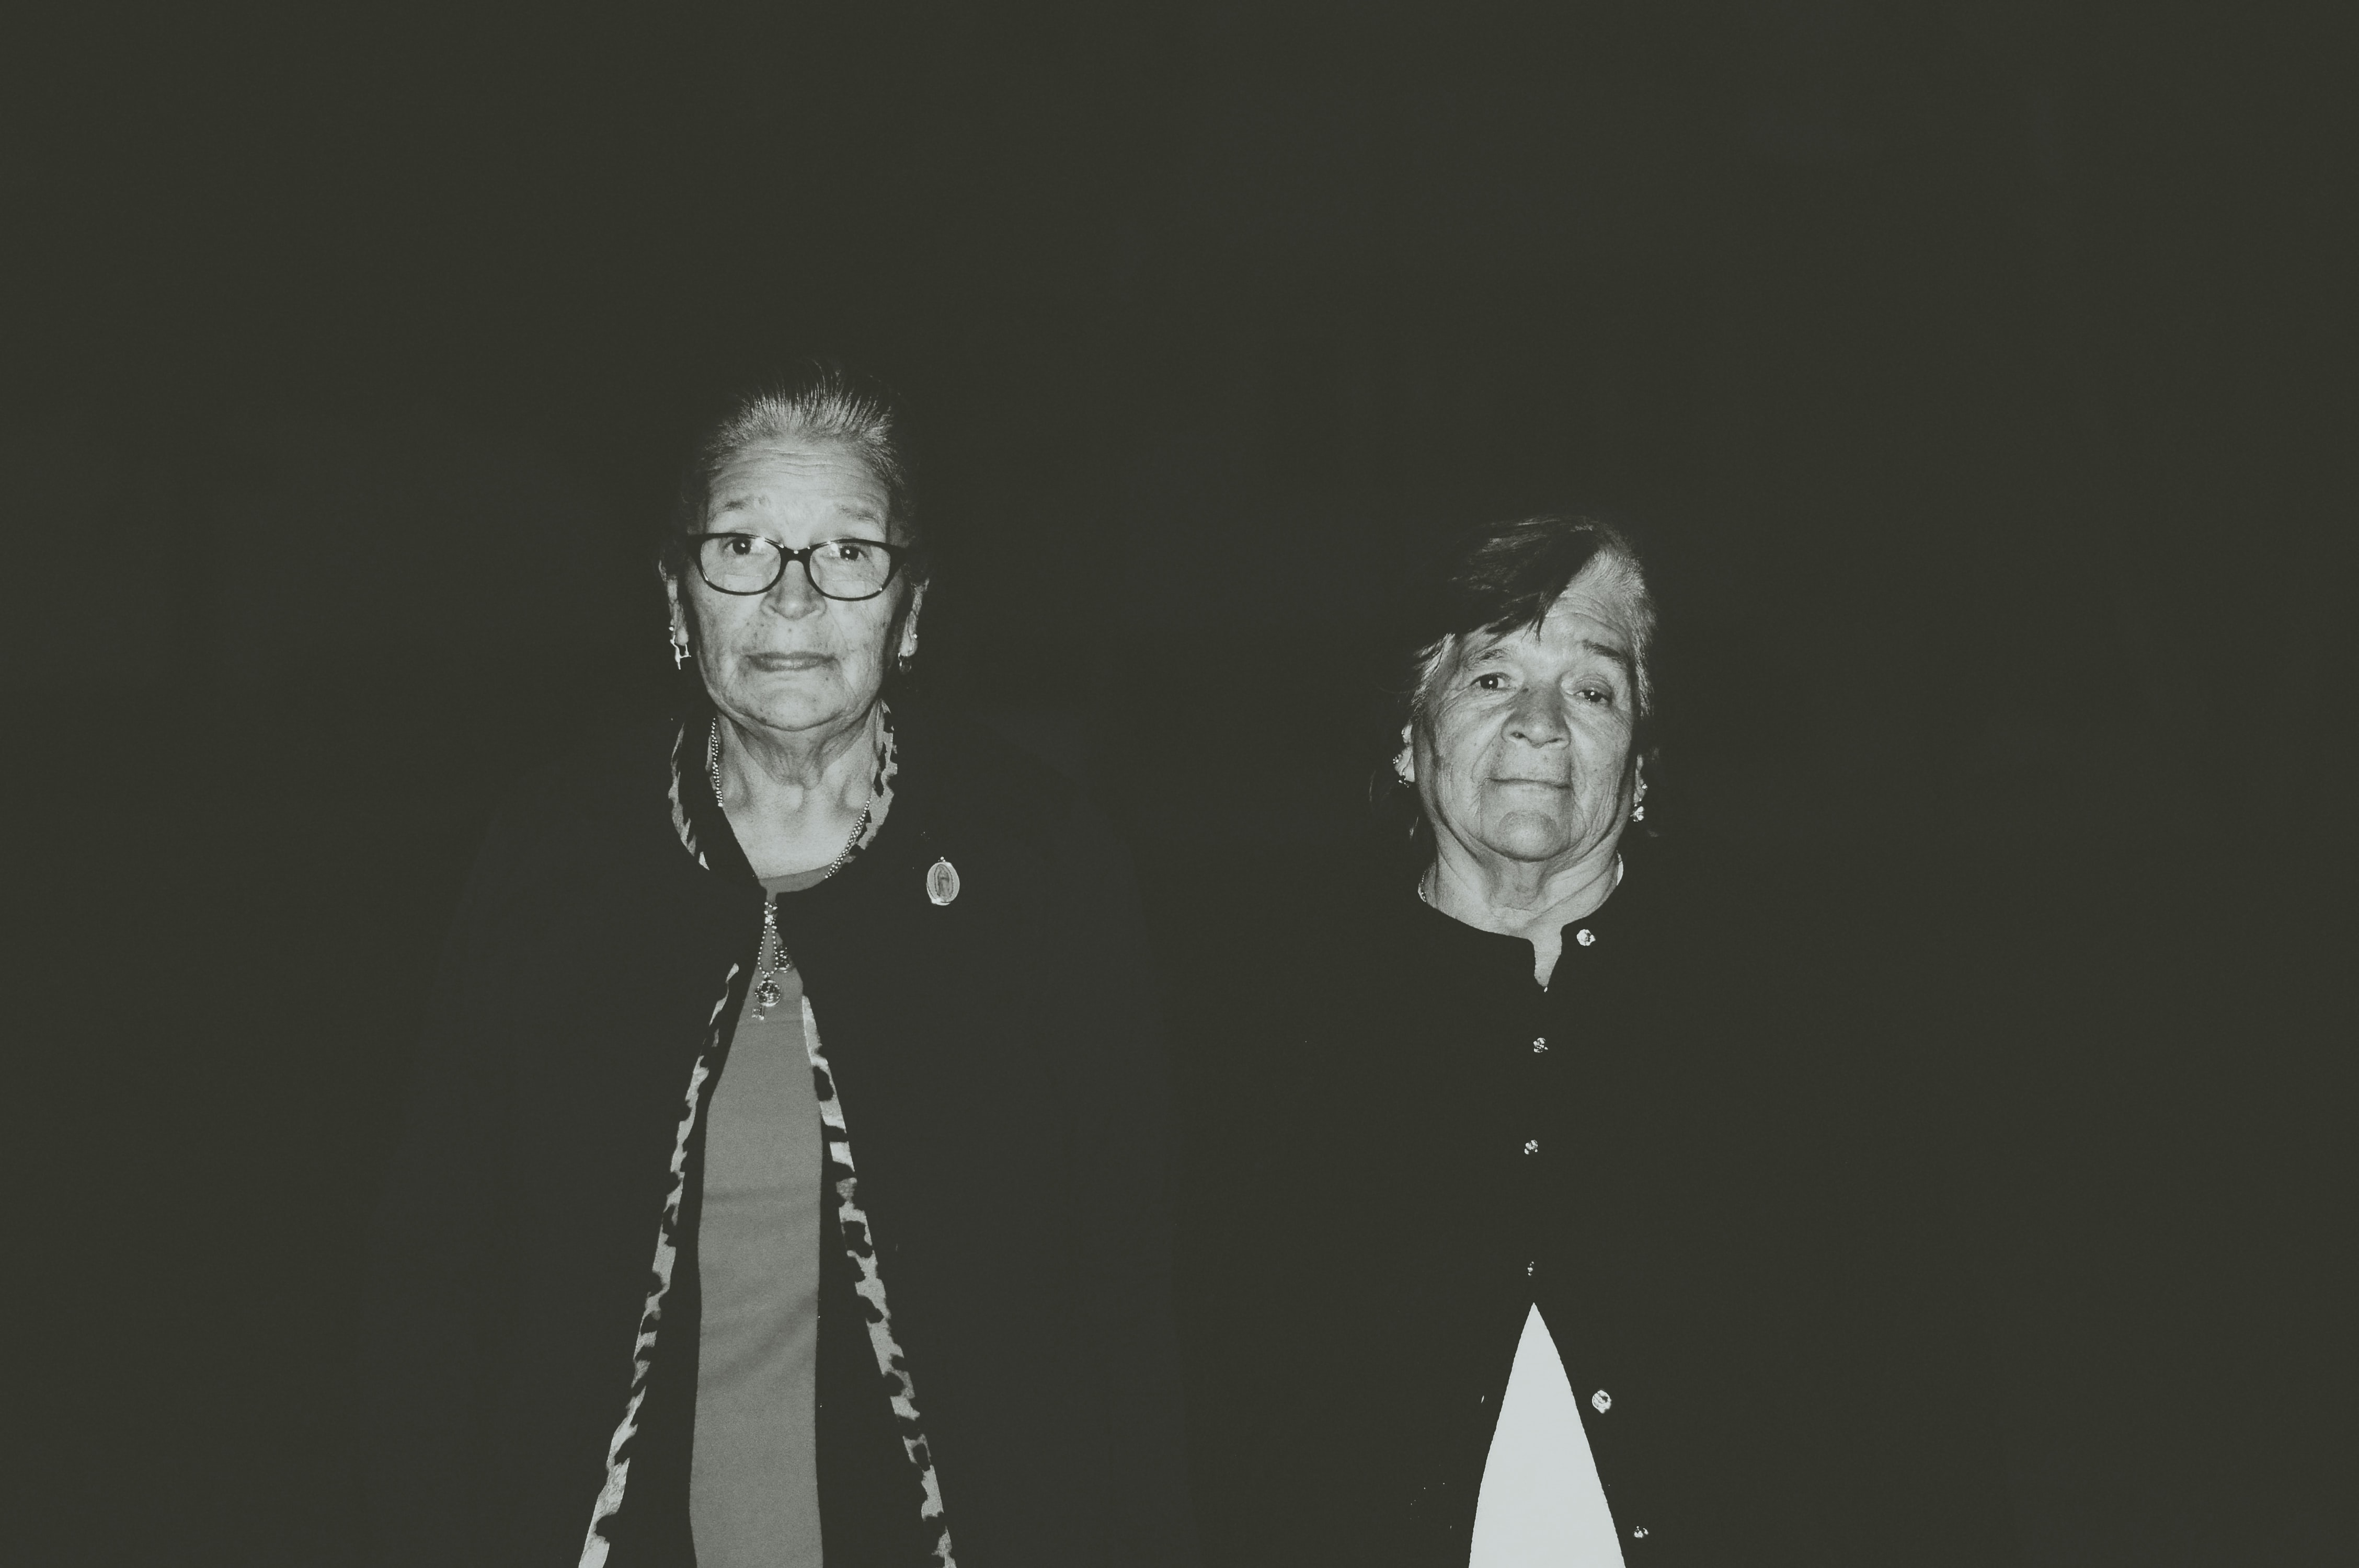 Two older women looking at the camera, with a black background.